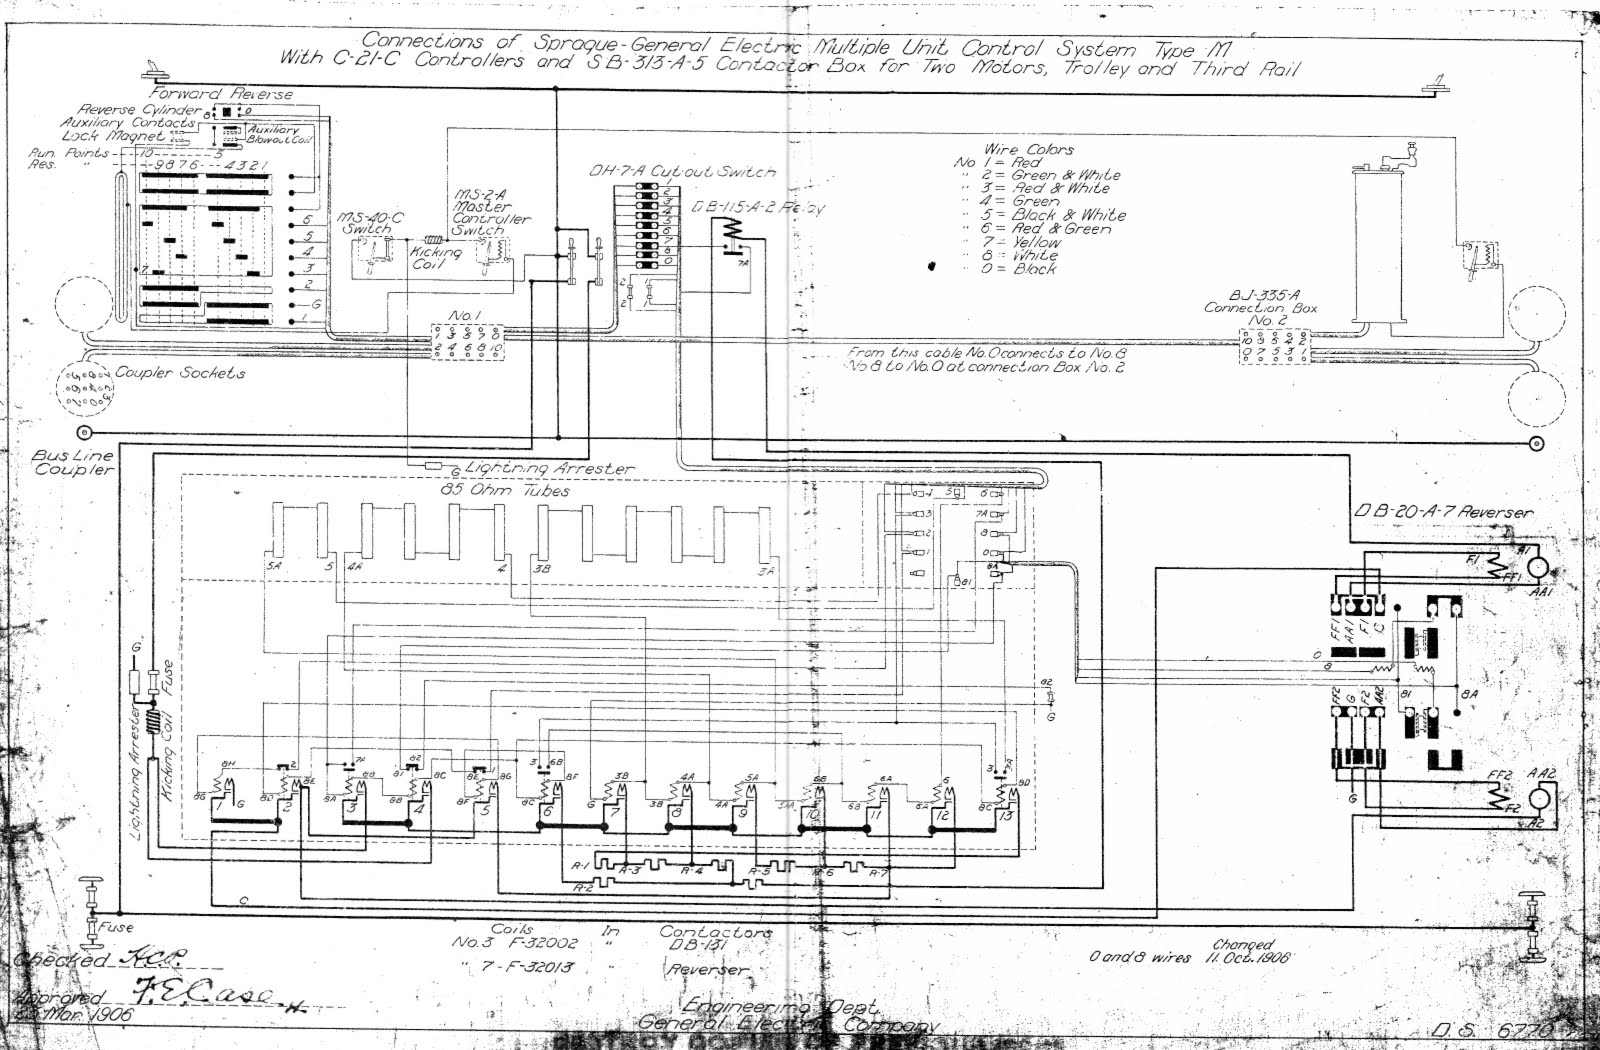 Honda Civic Fuse Box Diagrams 374430 moreover Chrysler Trailer Wiring Diagram additionally 2005 Chrysler 300 Parts Catalog moreover Crown Victoria Radio Wiring Harness together with E Cig Wiring Diagram. on 94 lexus radio wiring diagram